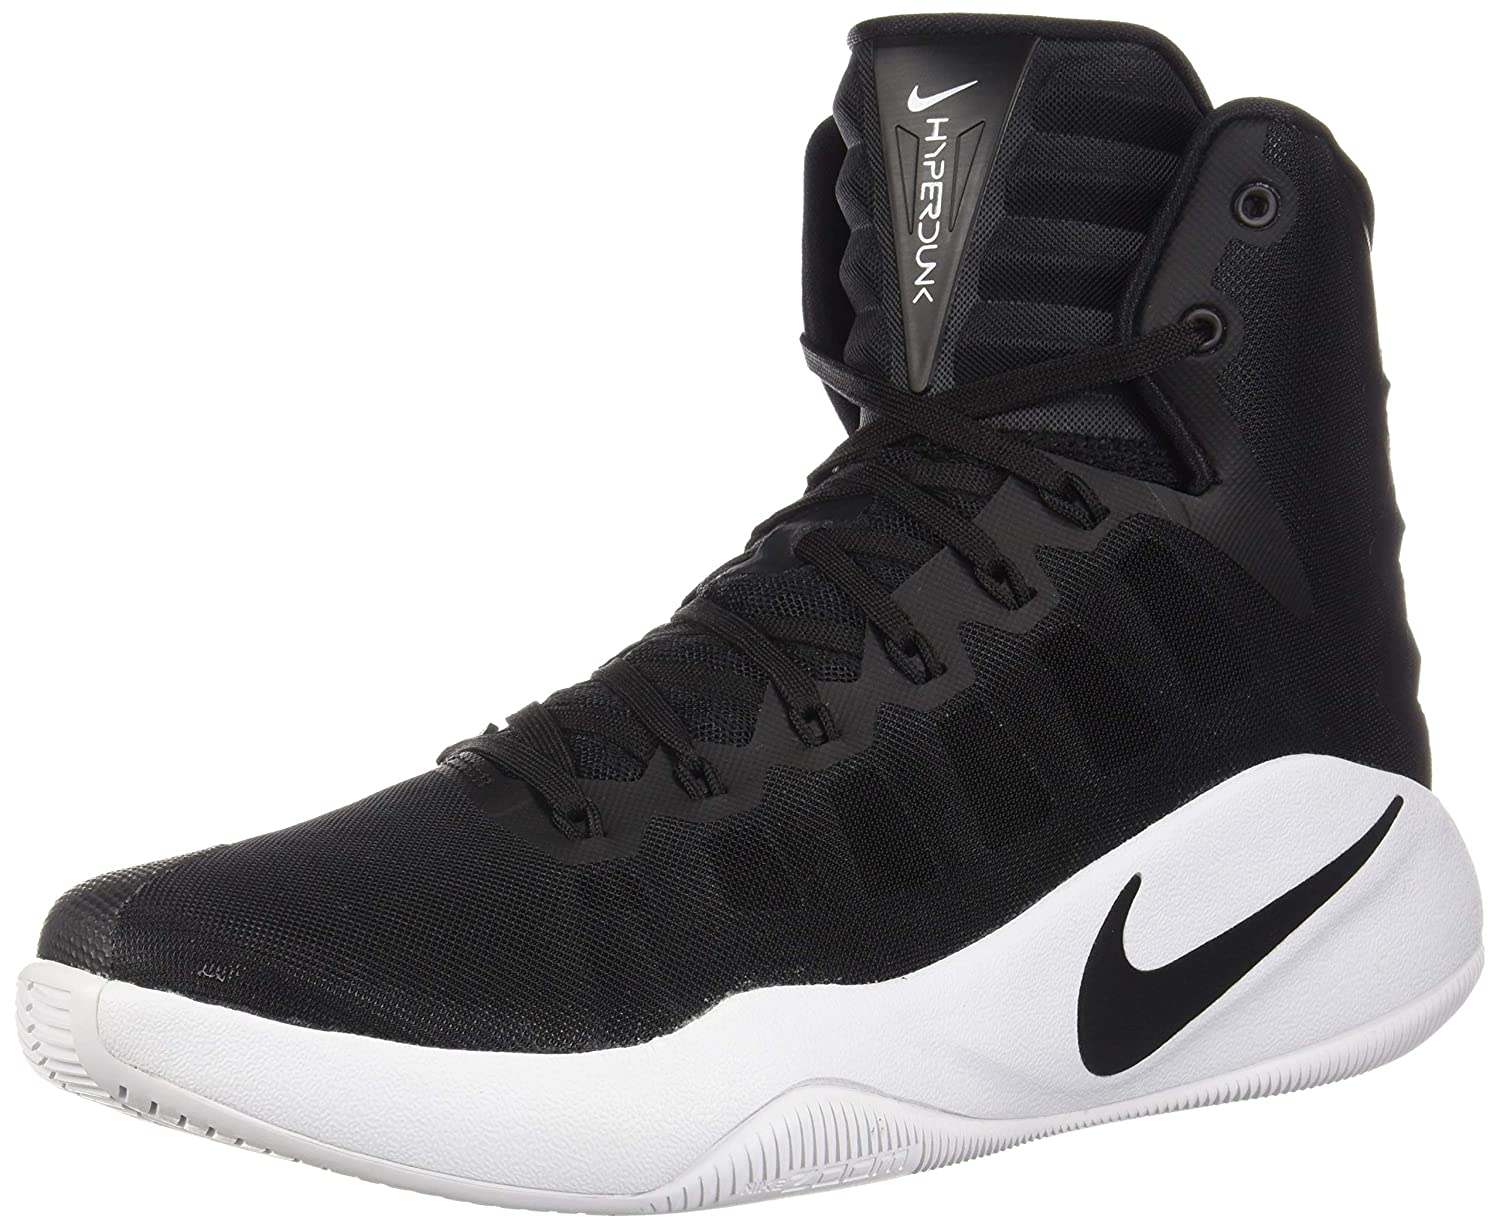 new concept 84631 b672a Amazon.com   NIKE Men s Hyperdunk 2016 TB Basketball Shoes 844368 001 Black  Size 10   Basketball